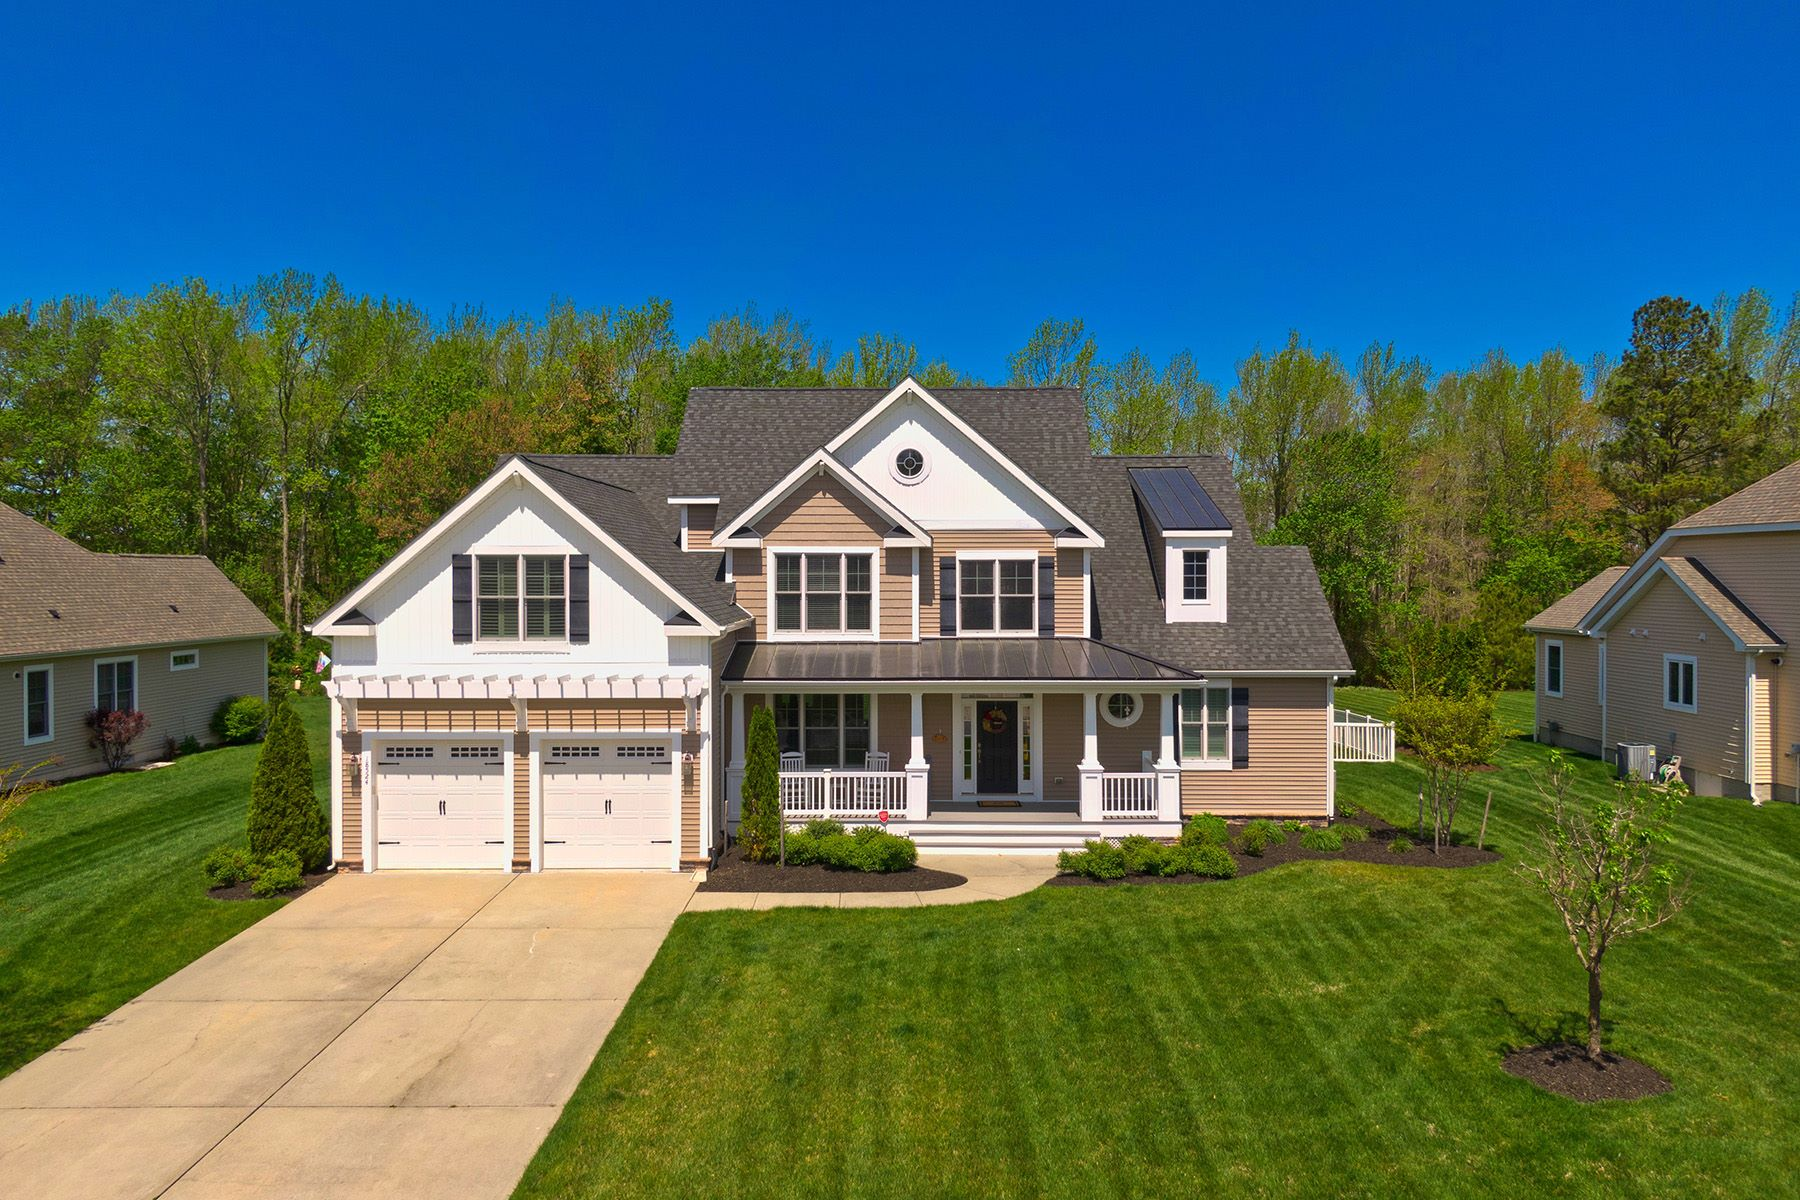 single family homes for Sale at 18524 Rose Ct , Lewes, DE 19958 18524 Rose Ct Lewes, Delaware 19958 United States